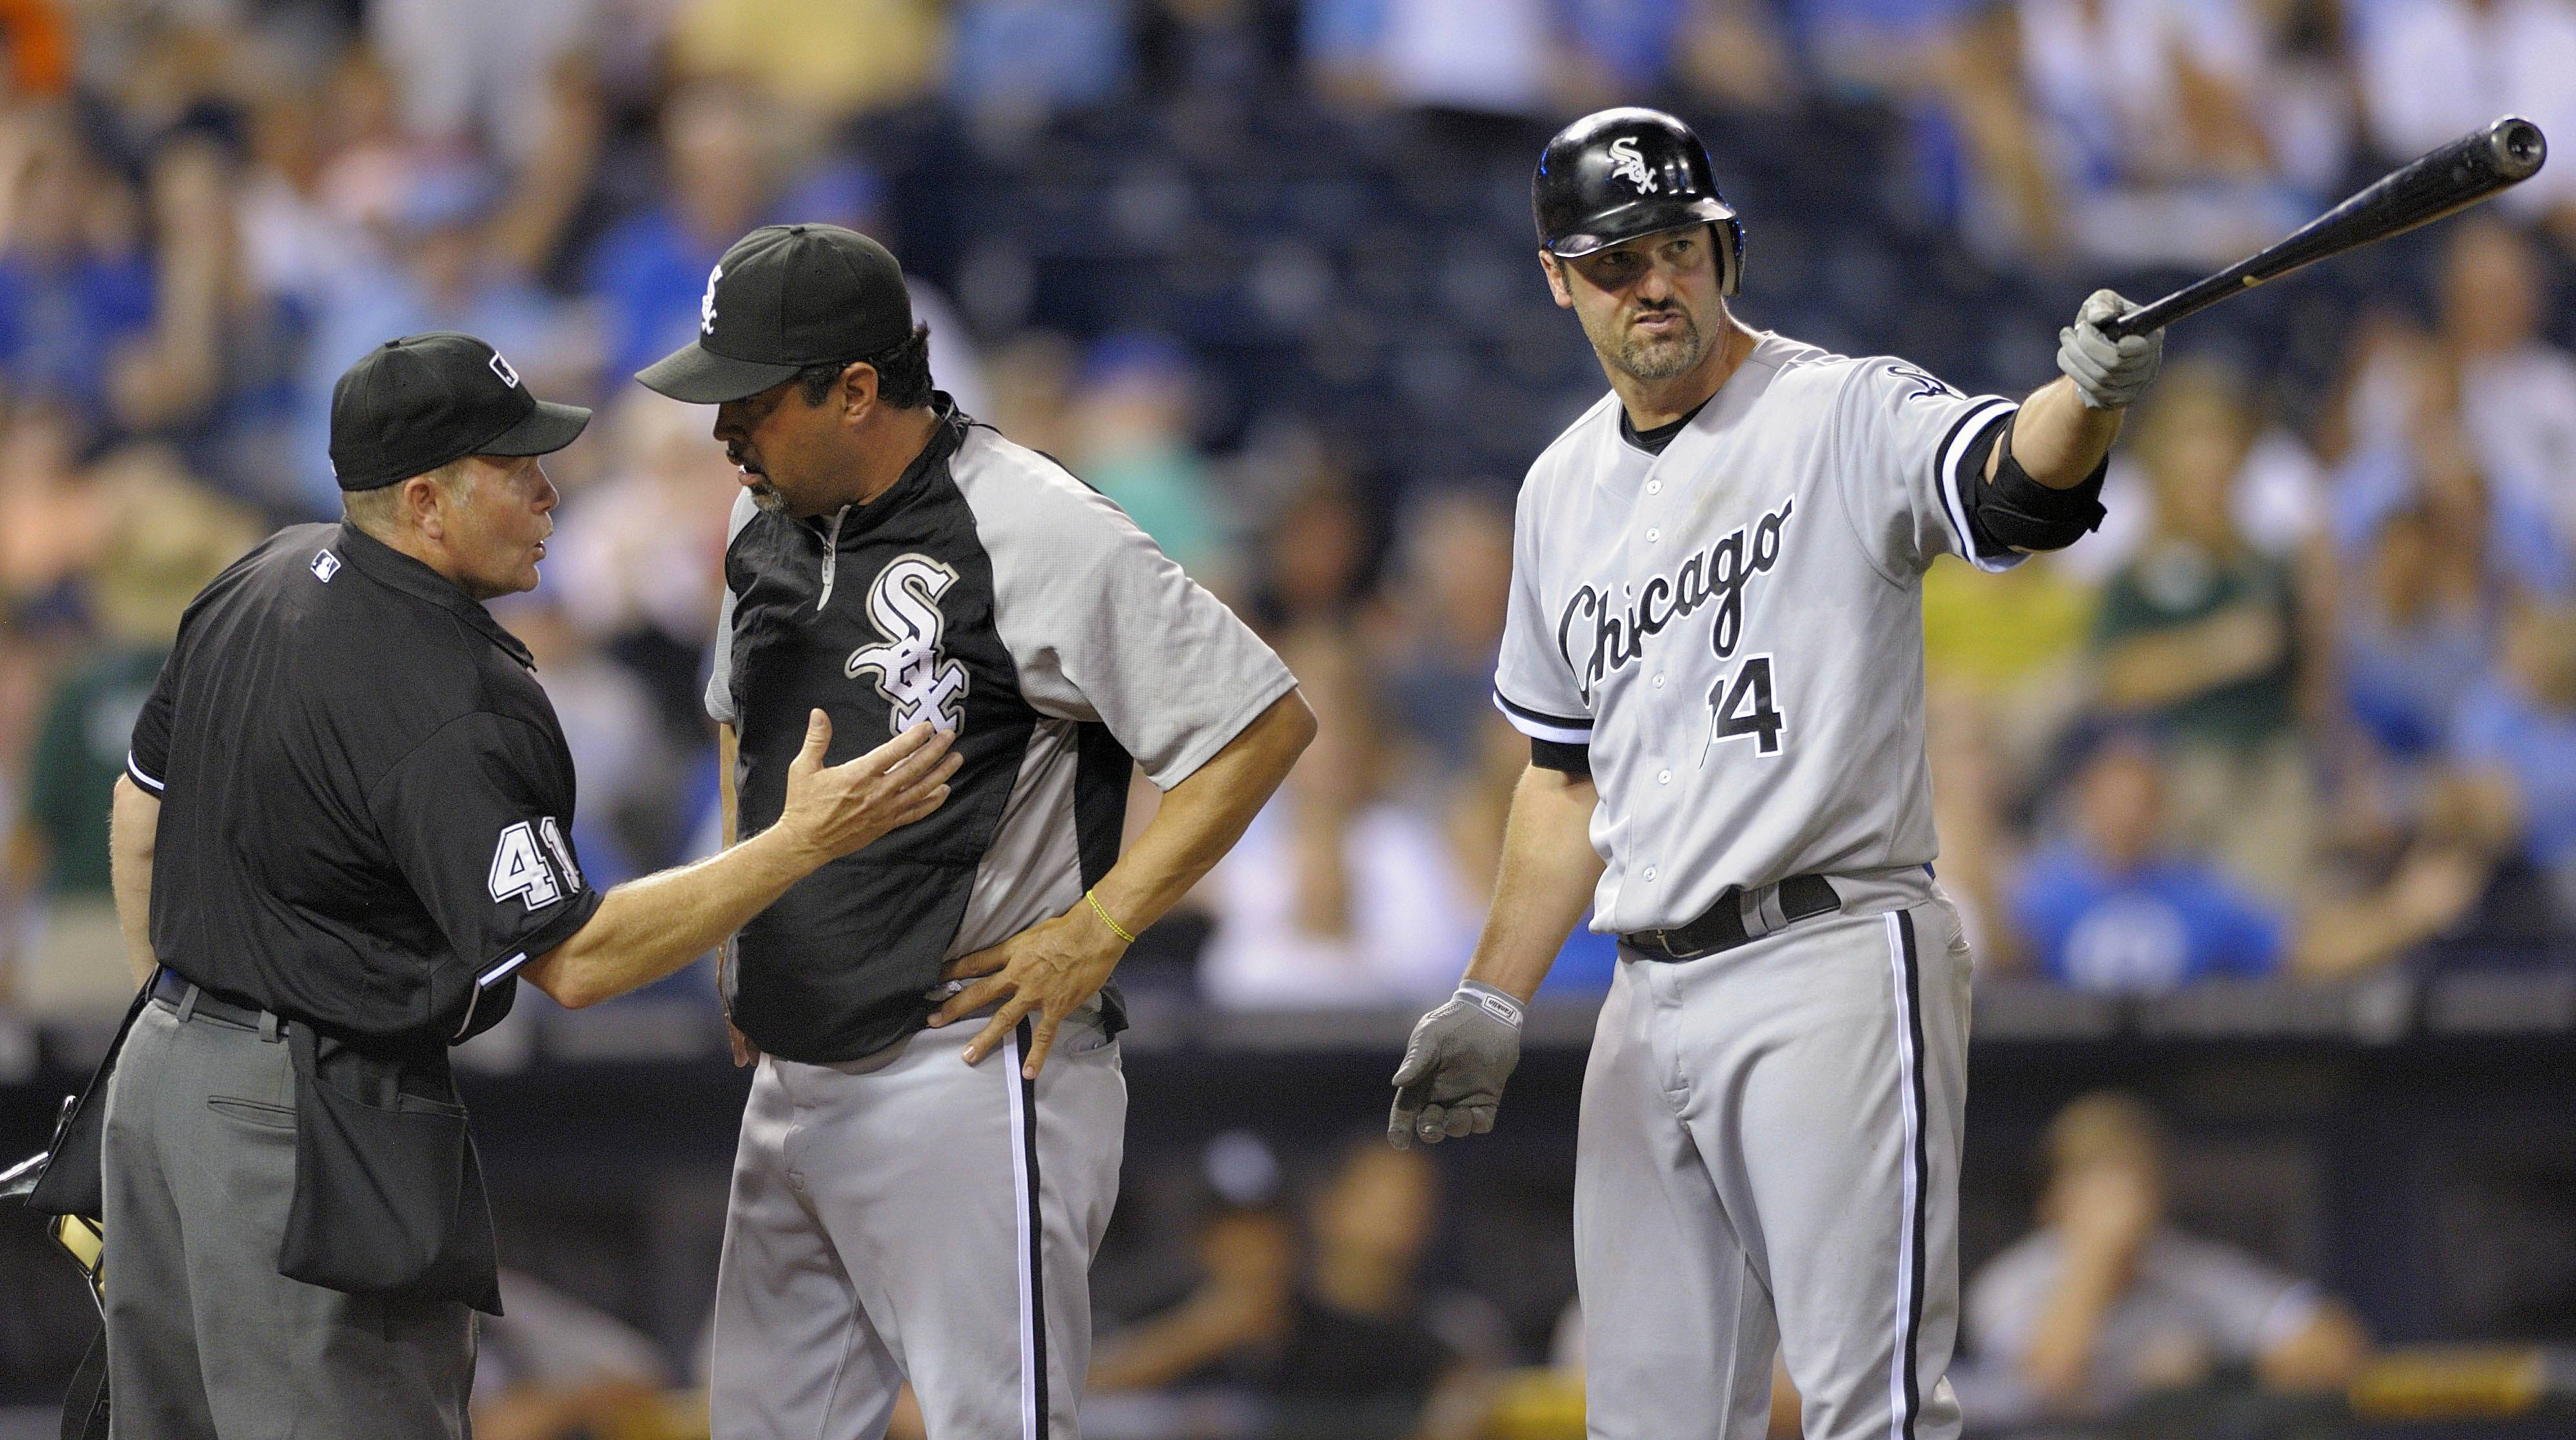 Ozzie Guillen, center, argues a call against Chicago White Sox first baseman Paul Konerko (14) with home plate umpire Jerry Meals, left, in the ninth inning of their baseball game against the Kansas City Royals in Kansas City, Mo., Wednesday, July 20, 2011. (AP Photo/Reed Hoffmann)